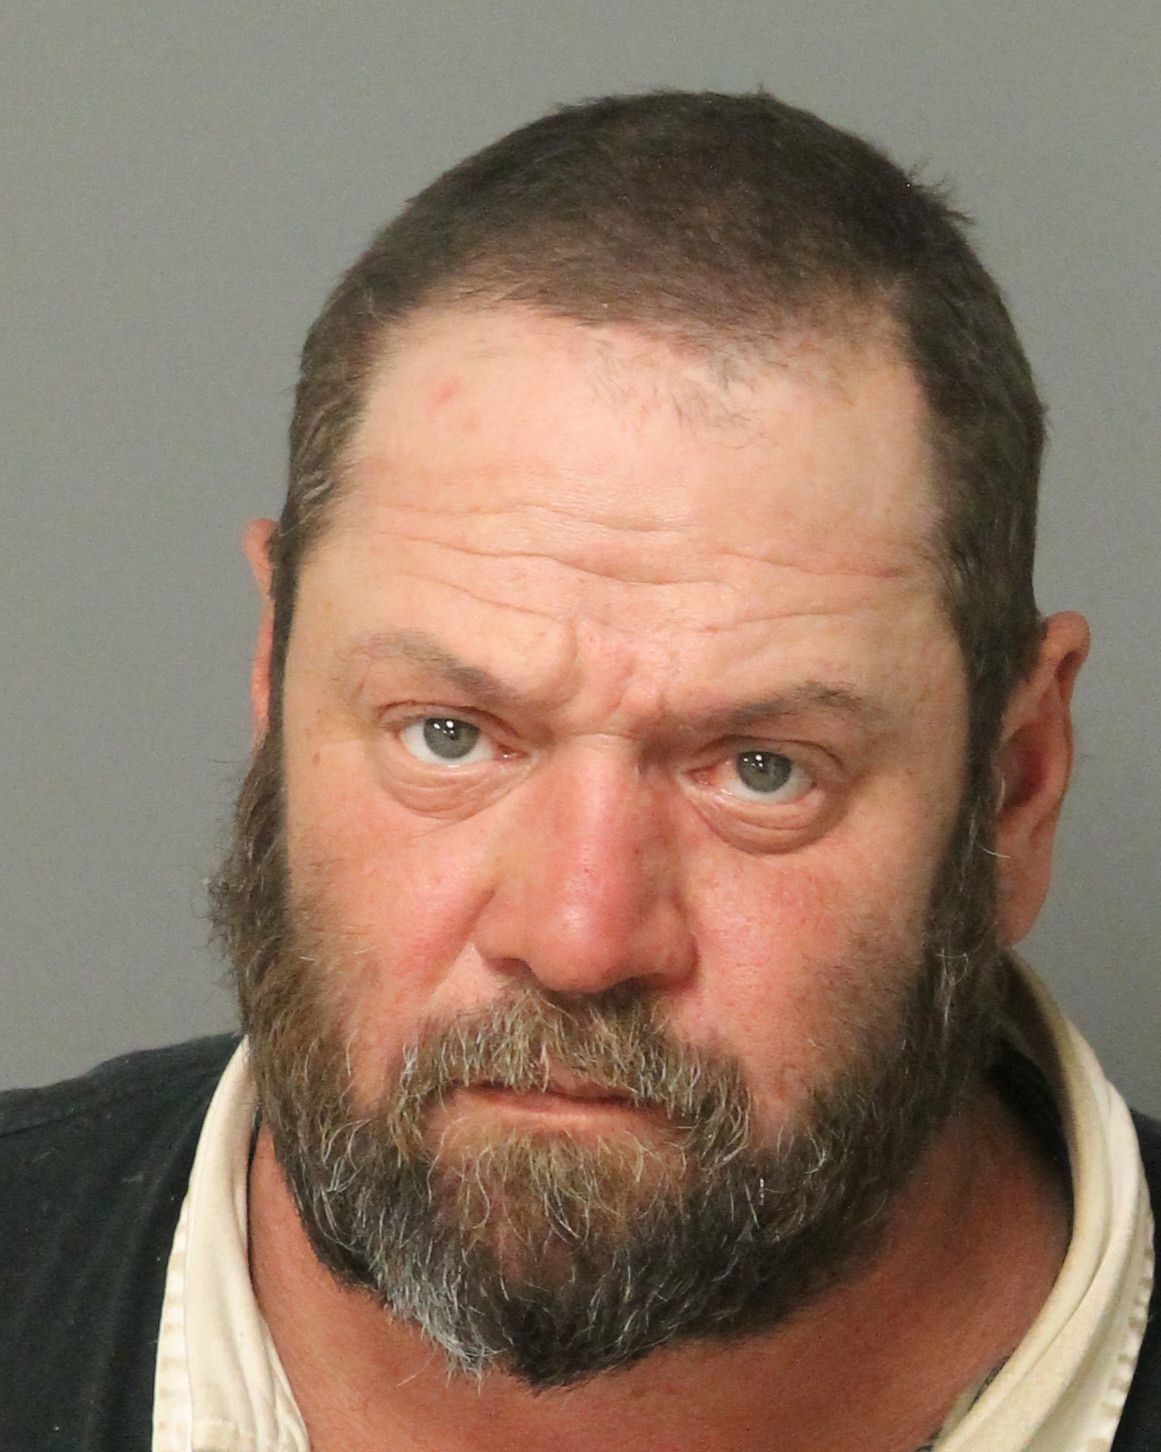 LANDON LUNSFORD MICHAEL Info, Photos, Data, and More / Wake County Public Records